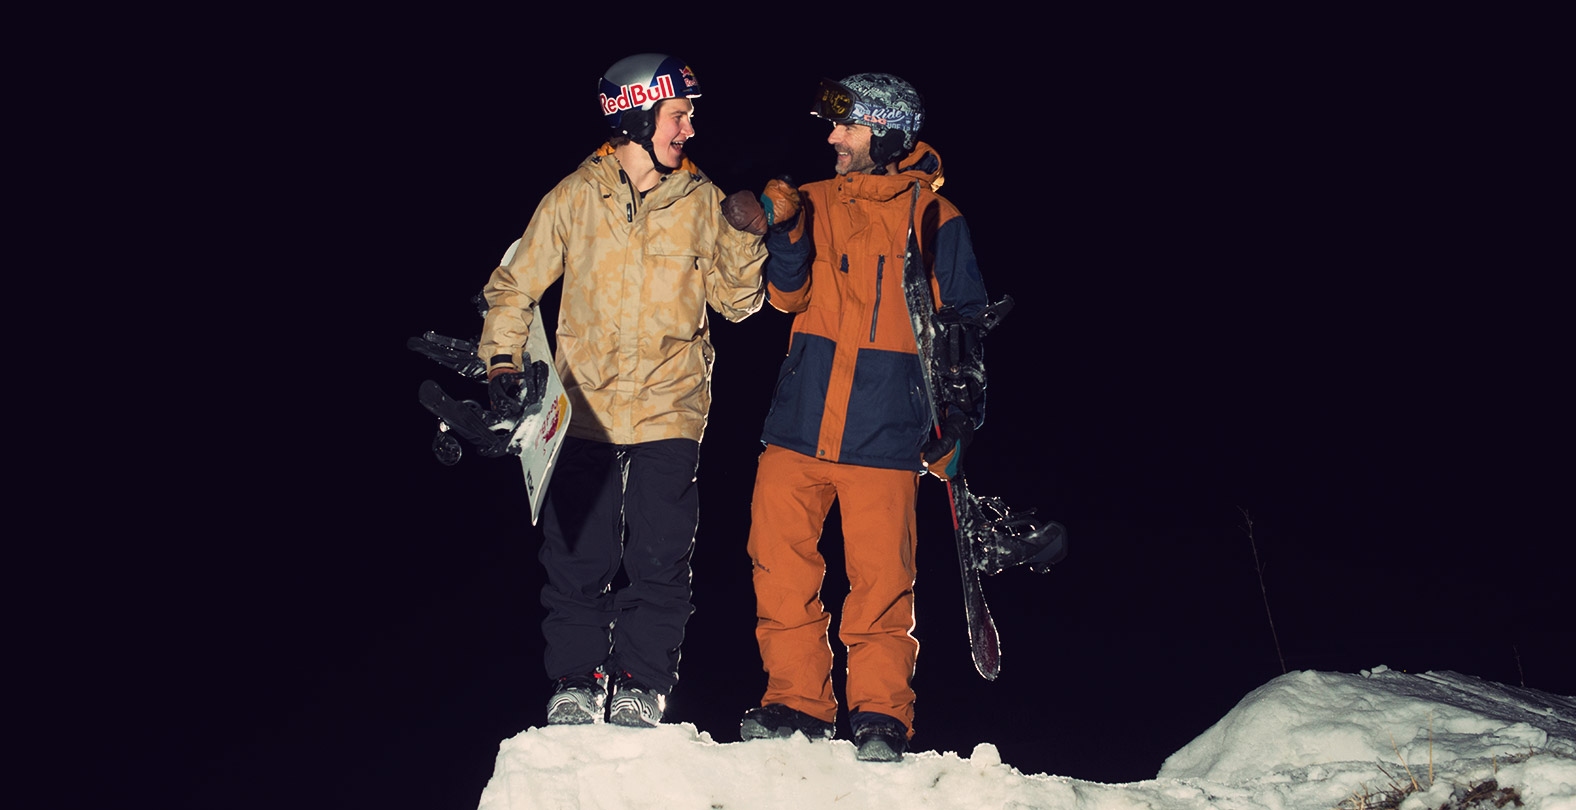 snowboarder David Hablützel and Gian Simmen cheering on the kicker during TSG night shooting in Saas Fee